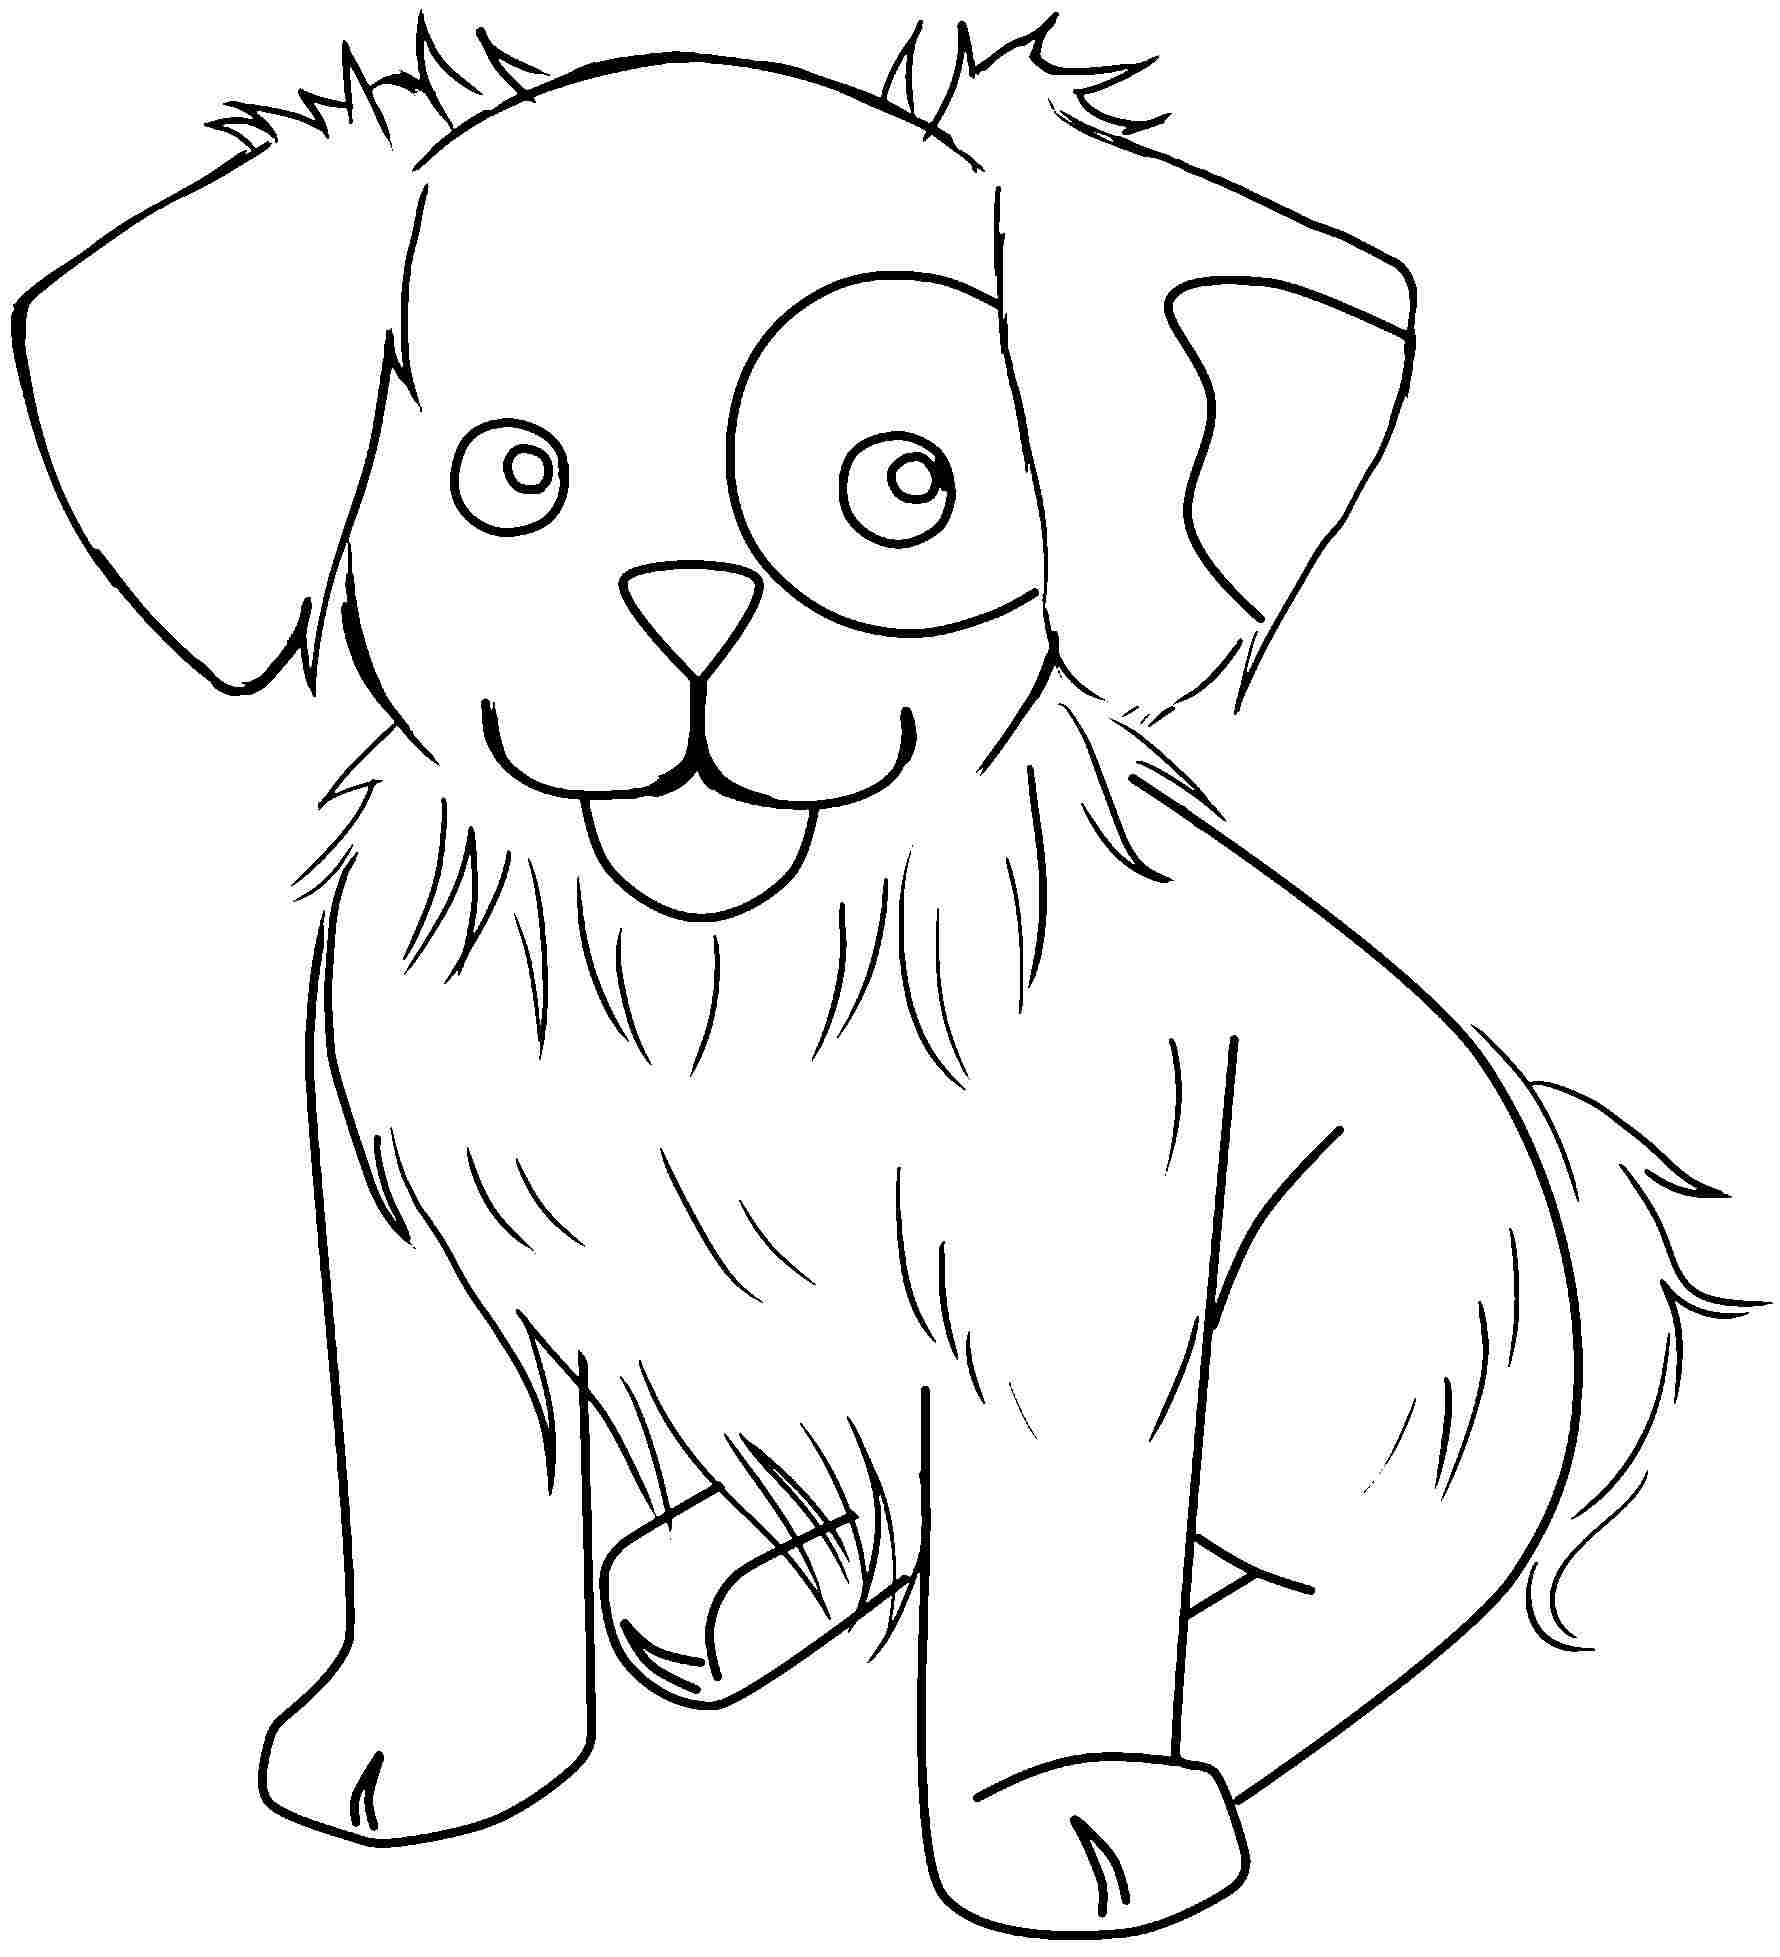 coloring worksheets animals cute animal coloring pages best coloring pages for kids coloring worksheets animals